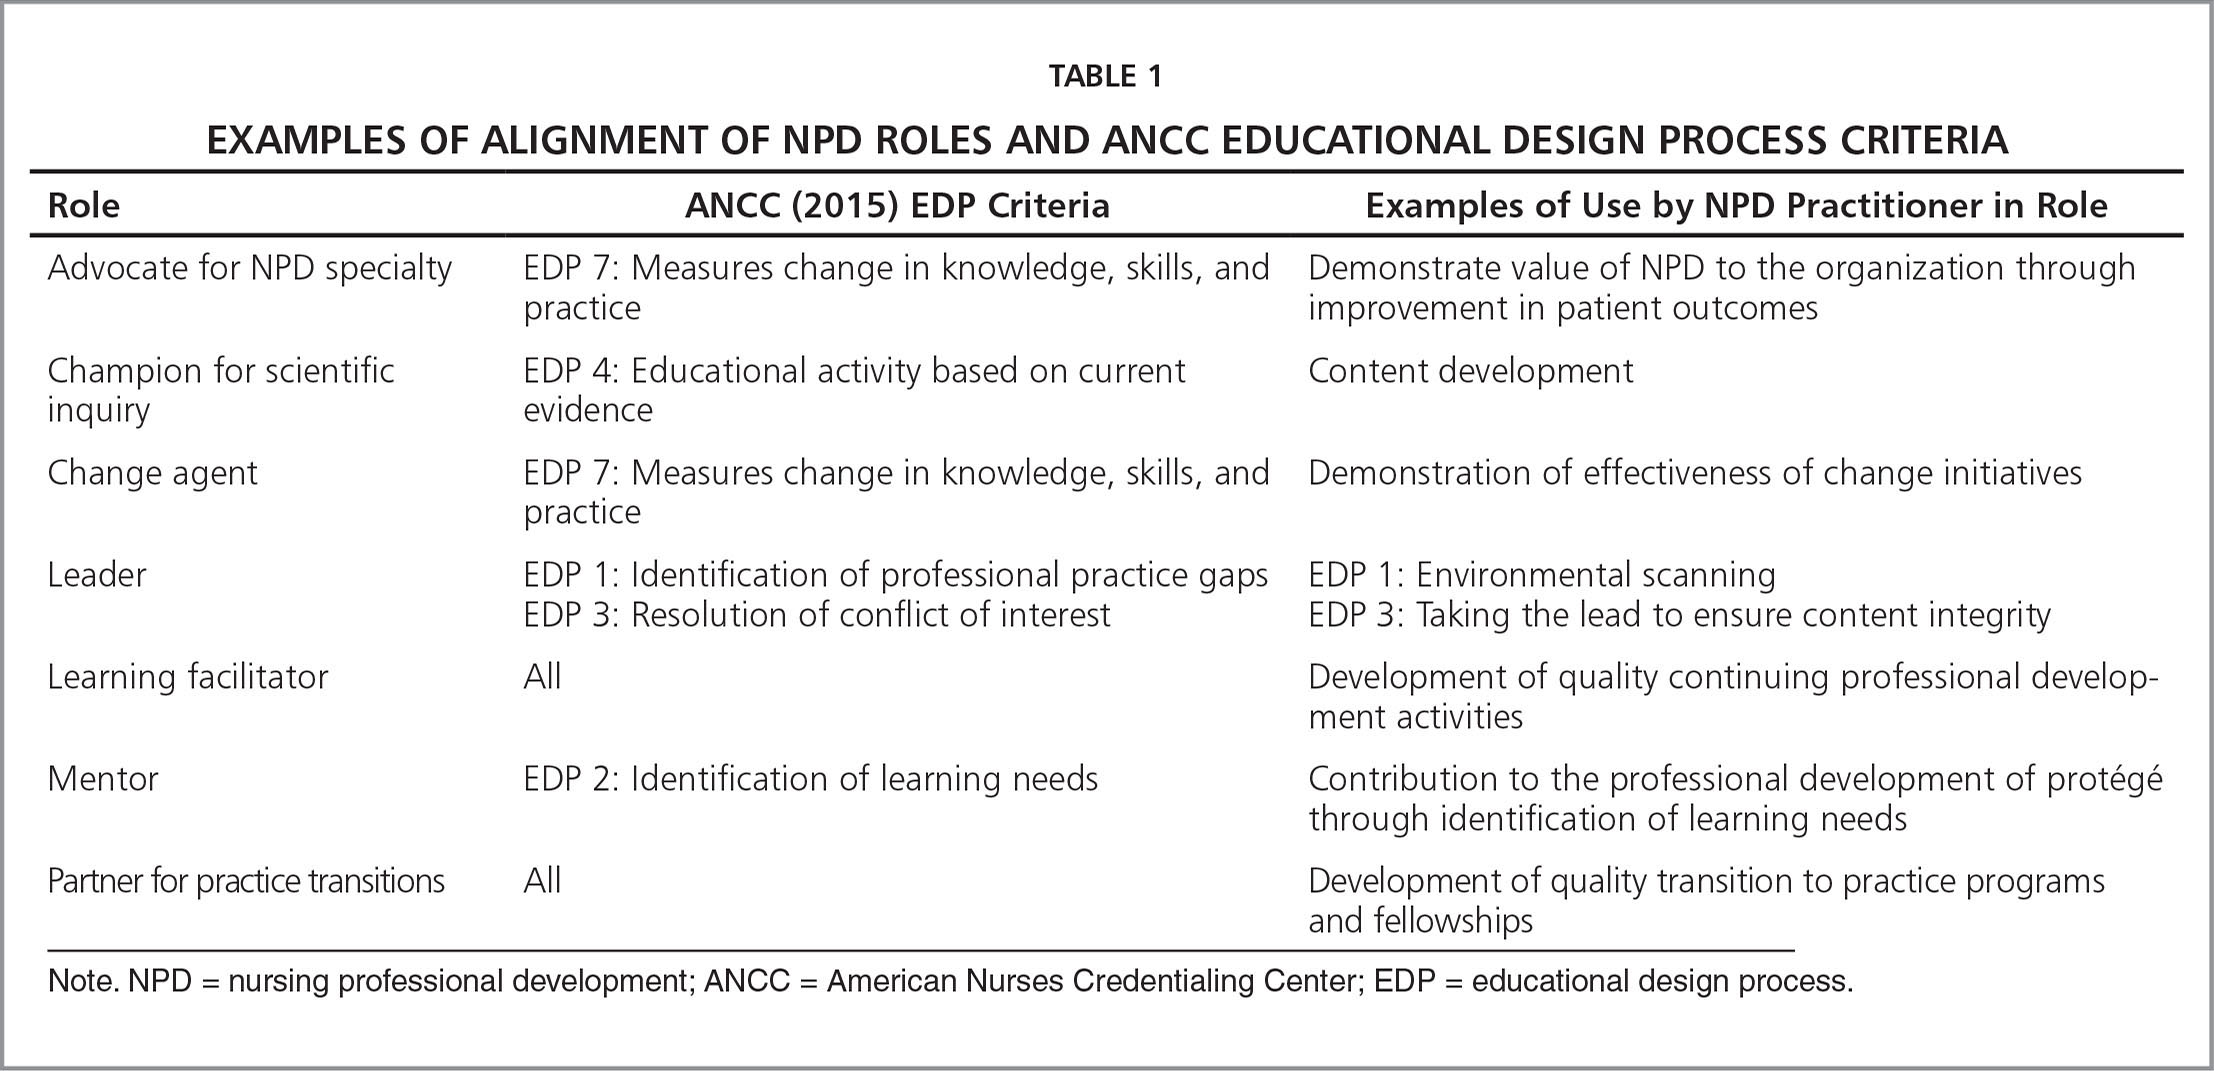 Examples of Alignment of NPD Roles and ANCC Educational Design Process Criteria